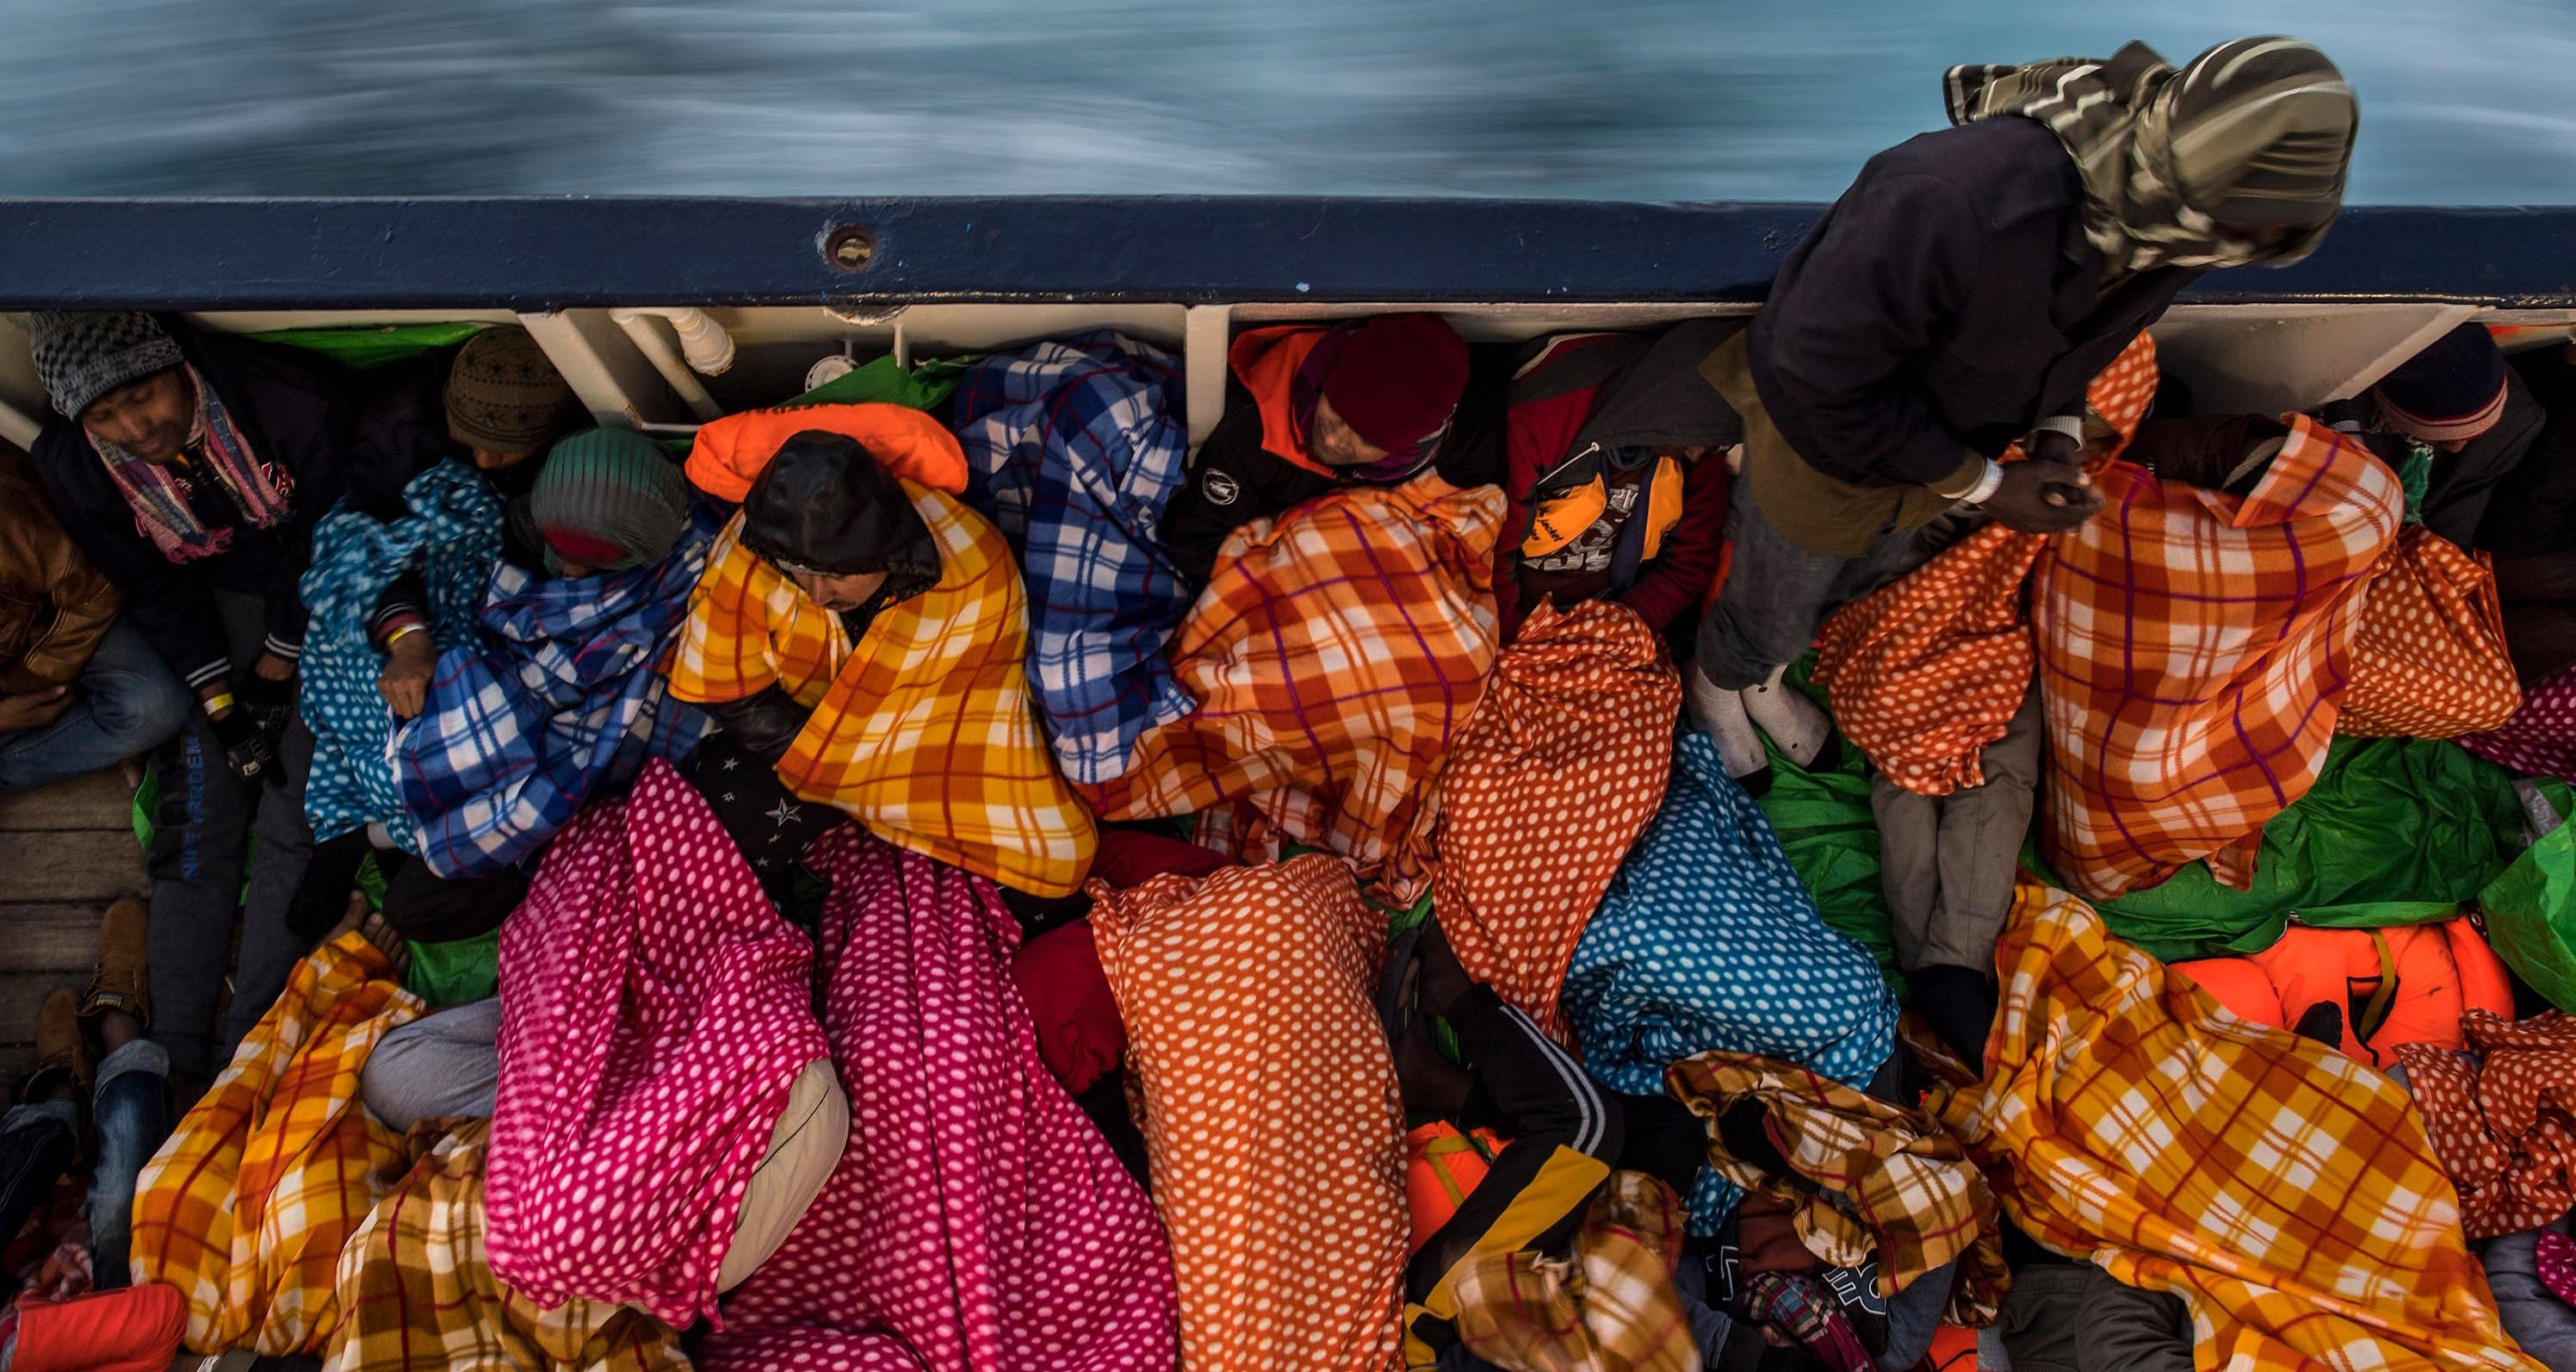 Migrants and asylum seekers on the deck of a Spanish rescue vessel in the Mediterranean, February 2017 (Photo: Getty Images/David Ramos)